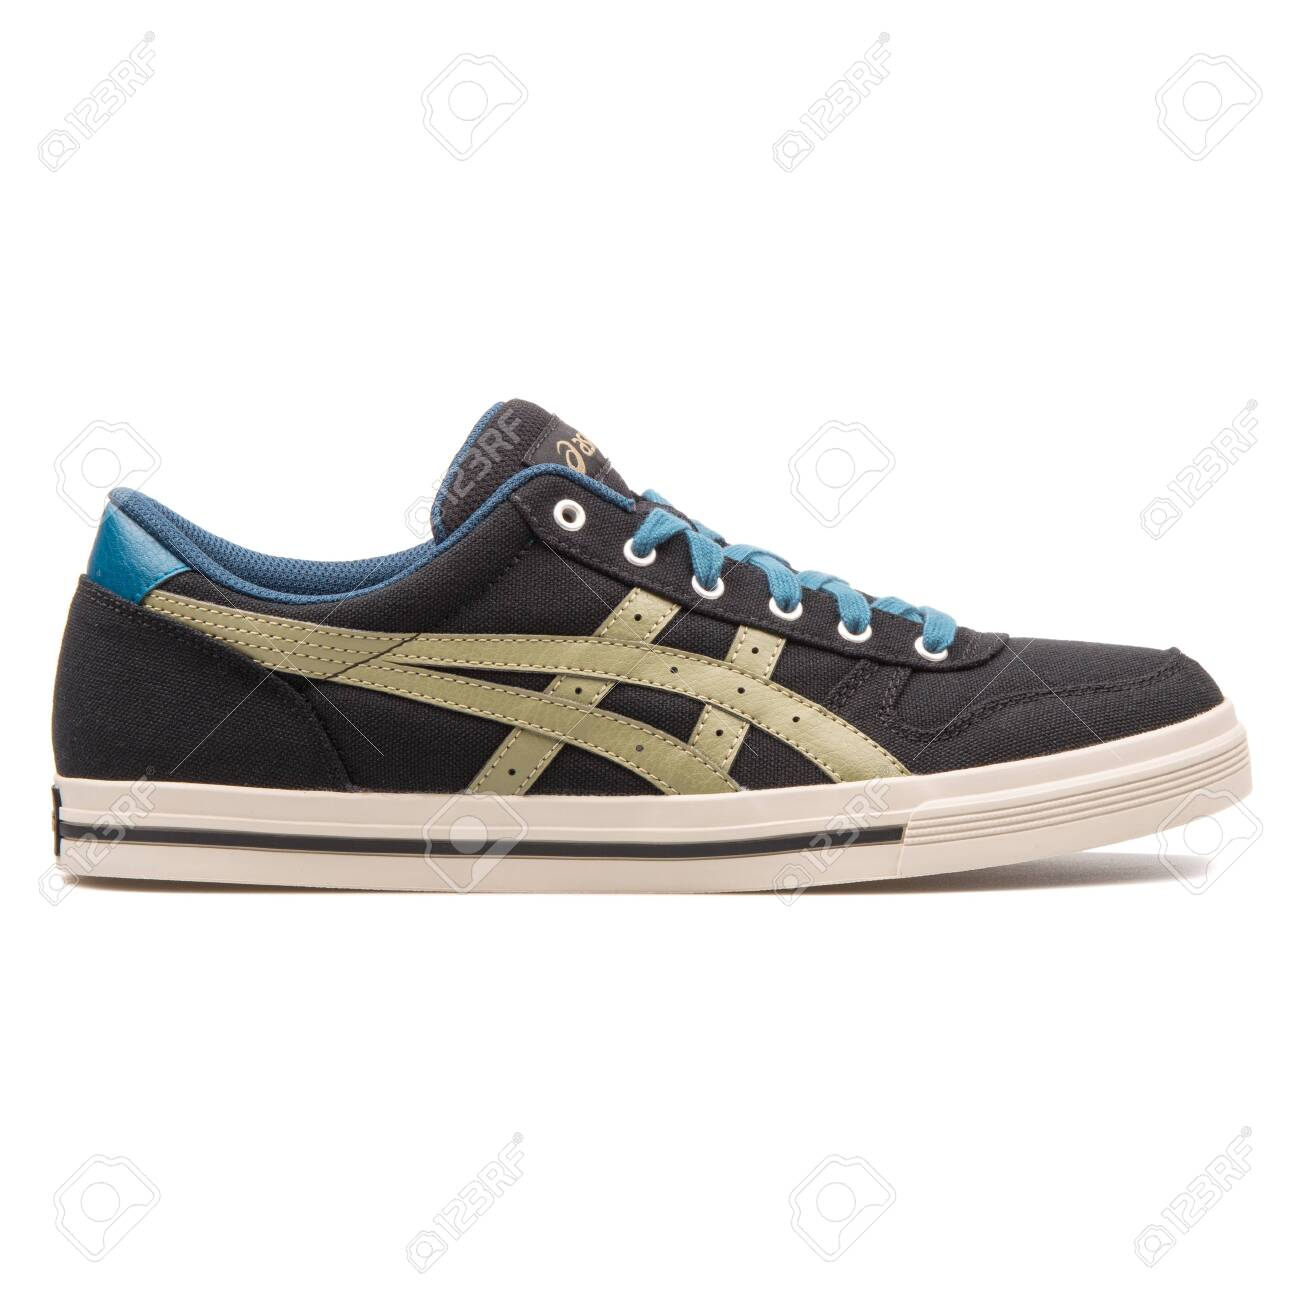 Asics Aaron Black And Olive.. Stock